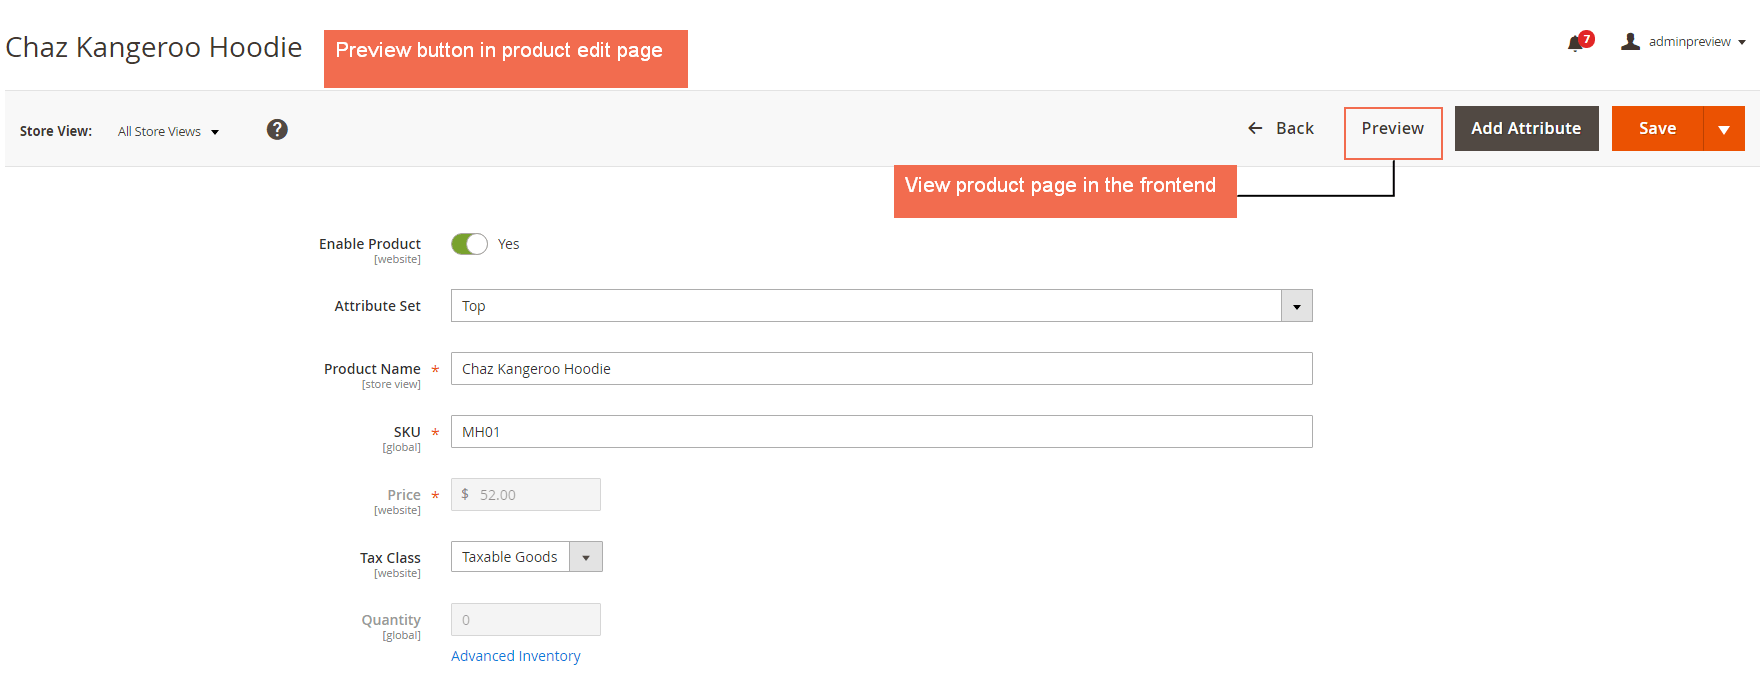 magento 2 Add preview buttons to preview Product Pages in the frontend from admin panel